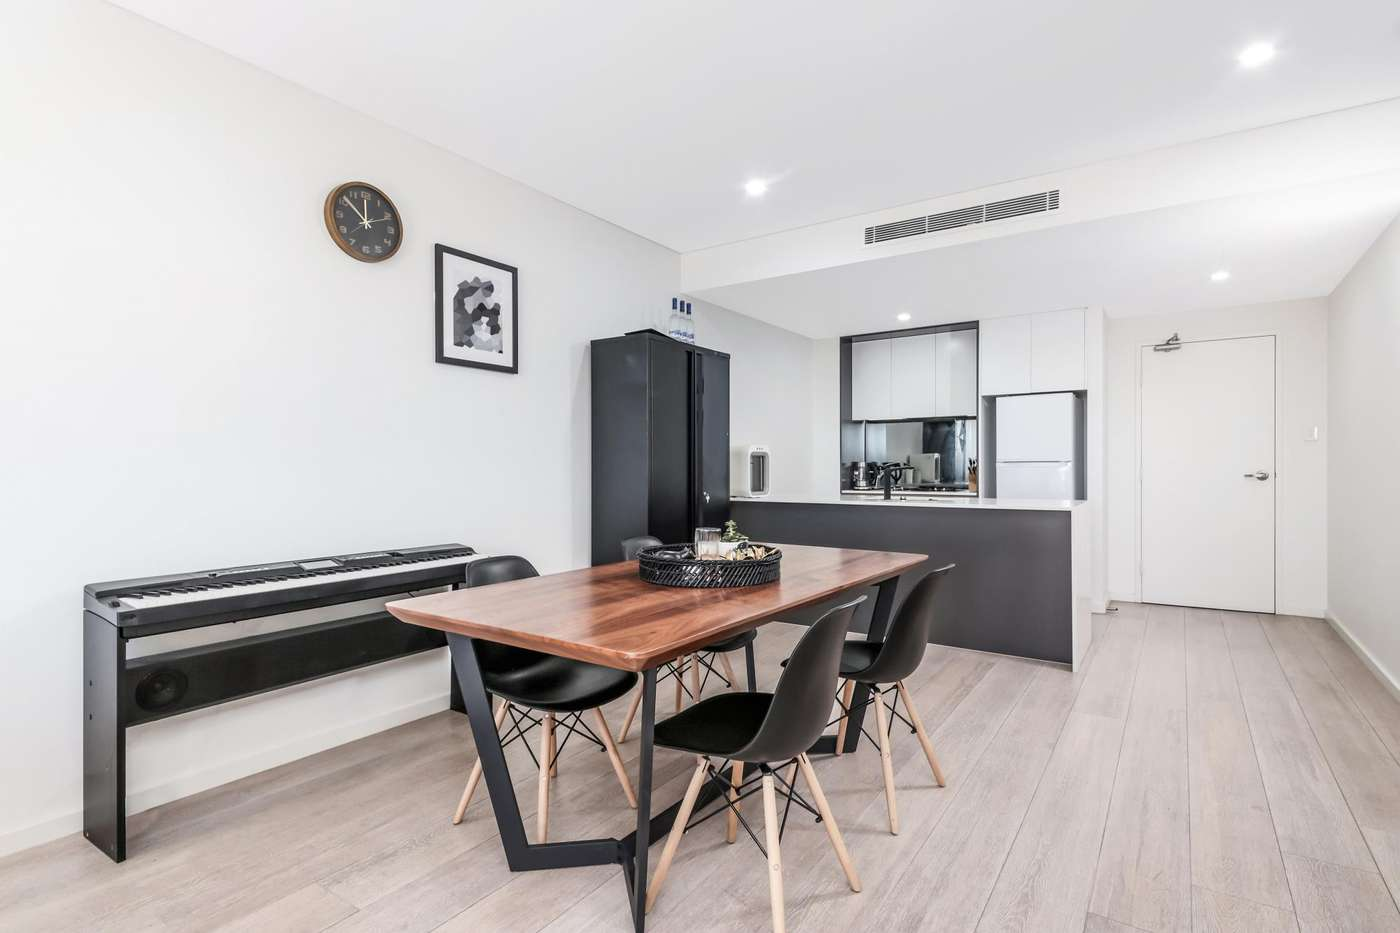 Main view of Homely apartment listing, 15/205 Homer Street, Earlwood, NSW 2206